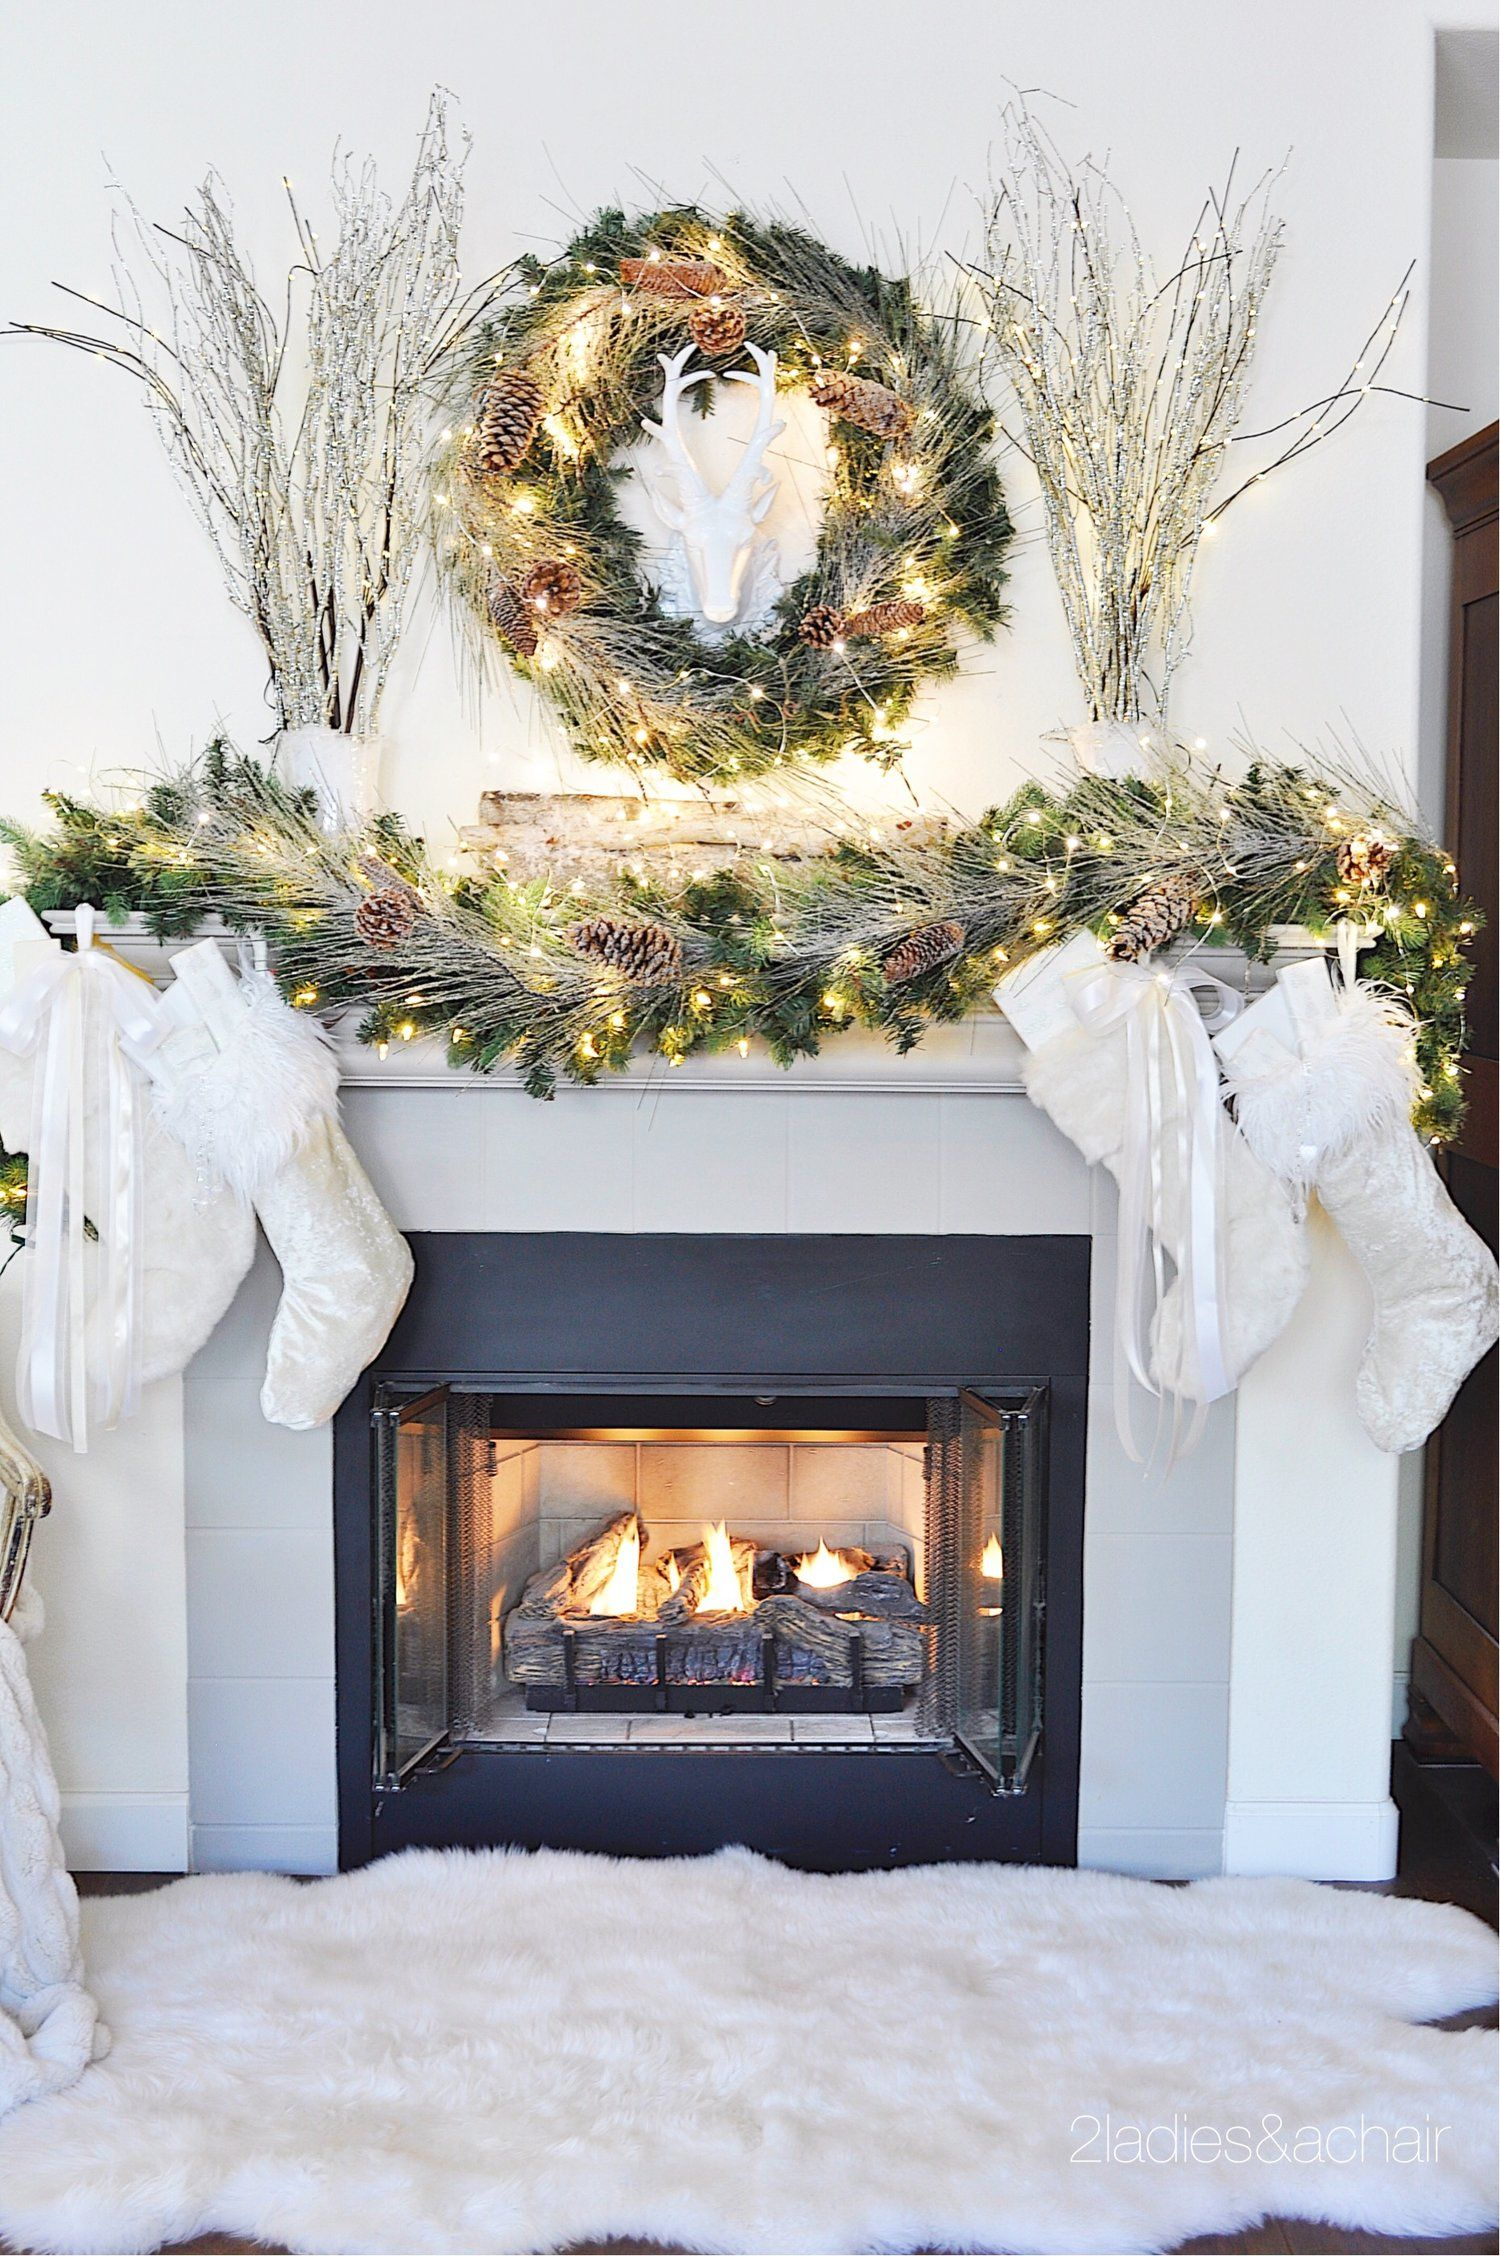 Christmas Home Decorating Ideas For A Beautiful Holiday 2 Ladies A Chair Christmas Fireplace Decor Holiday Fireplace Christmas Mantel Decorations